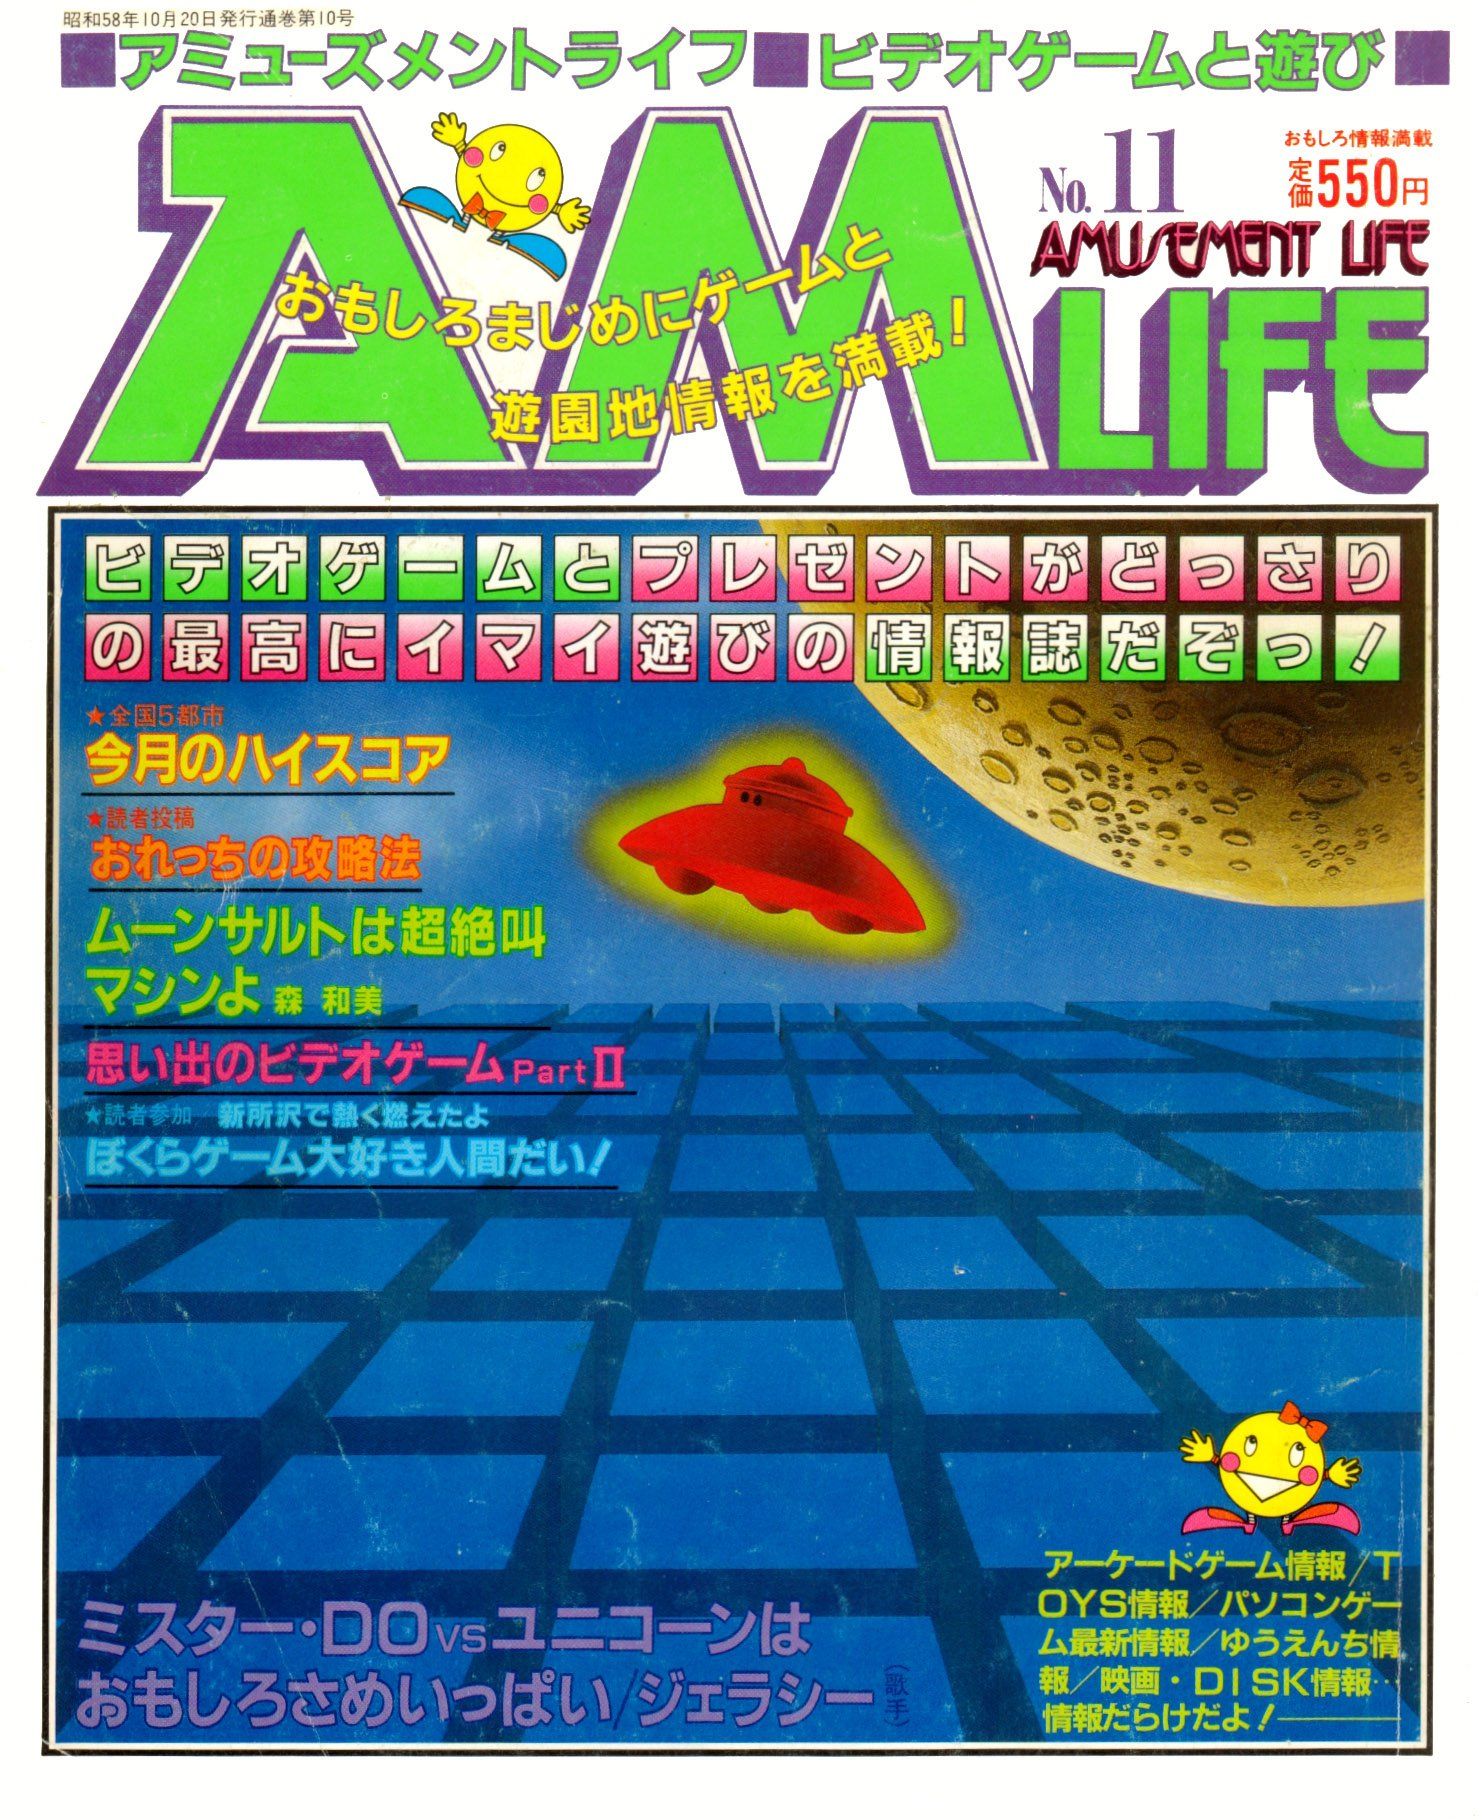 Amusement Life Issue 11 (October 1983)